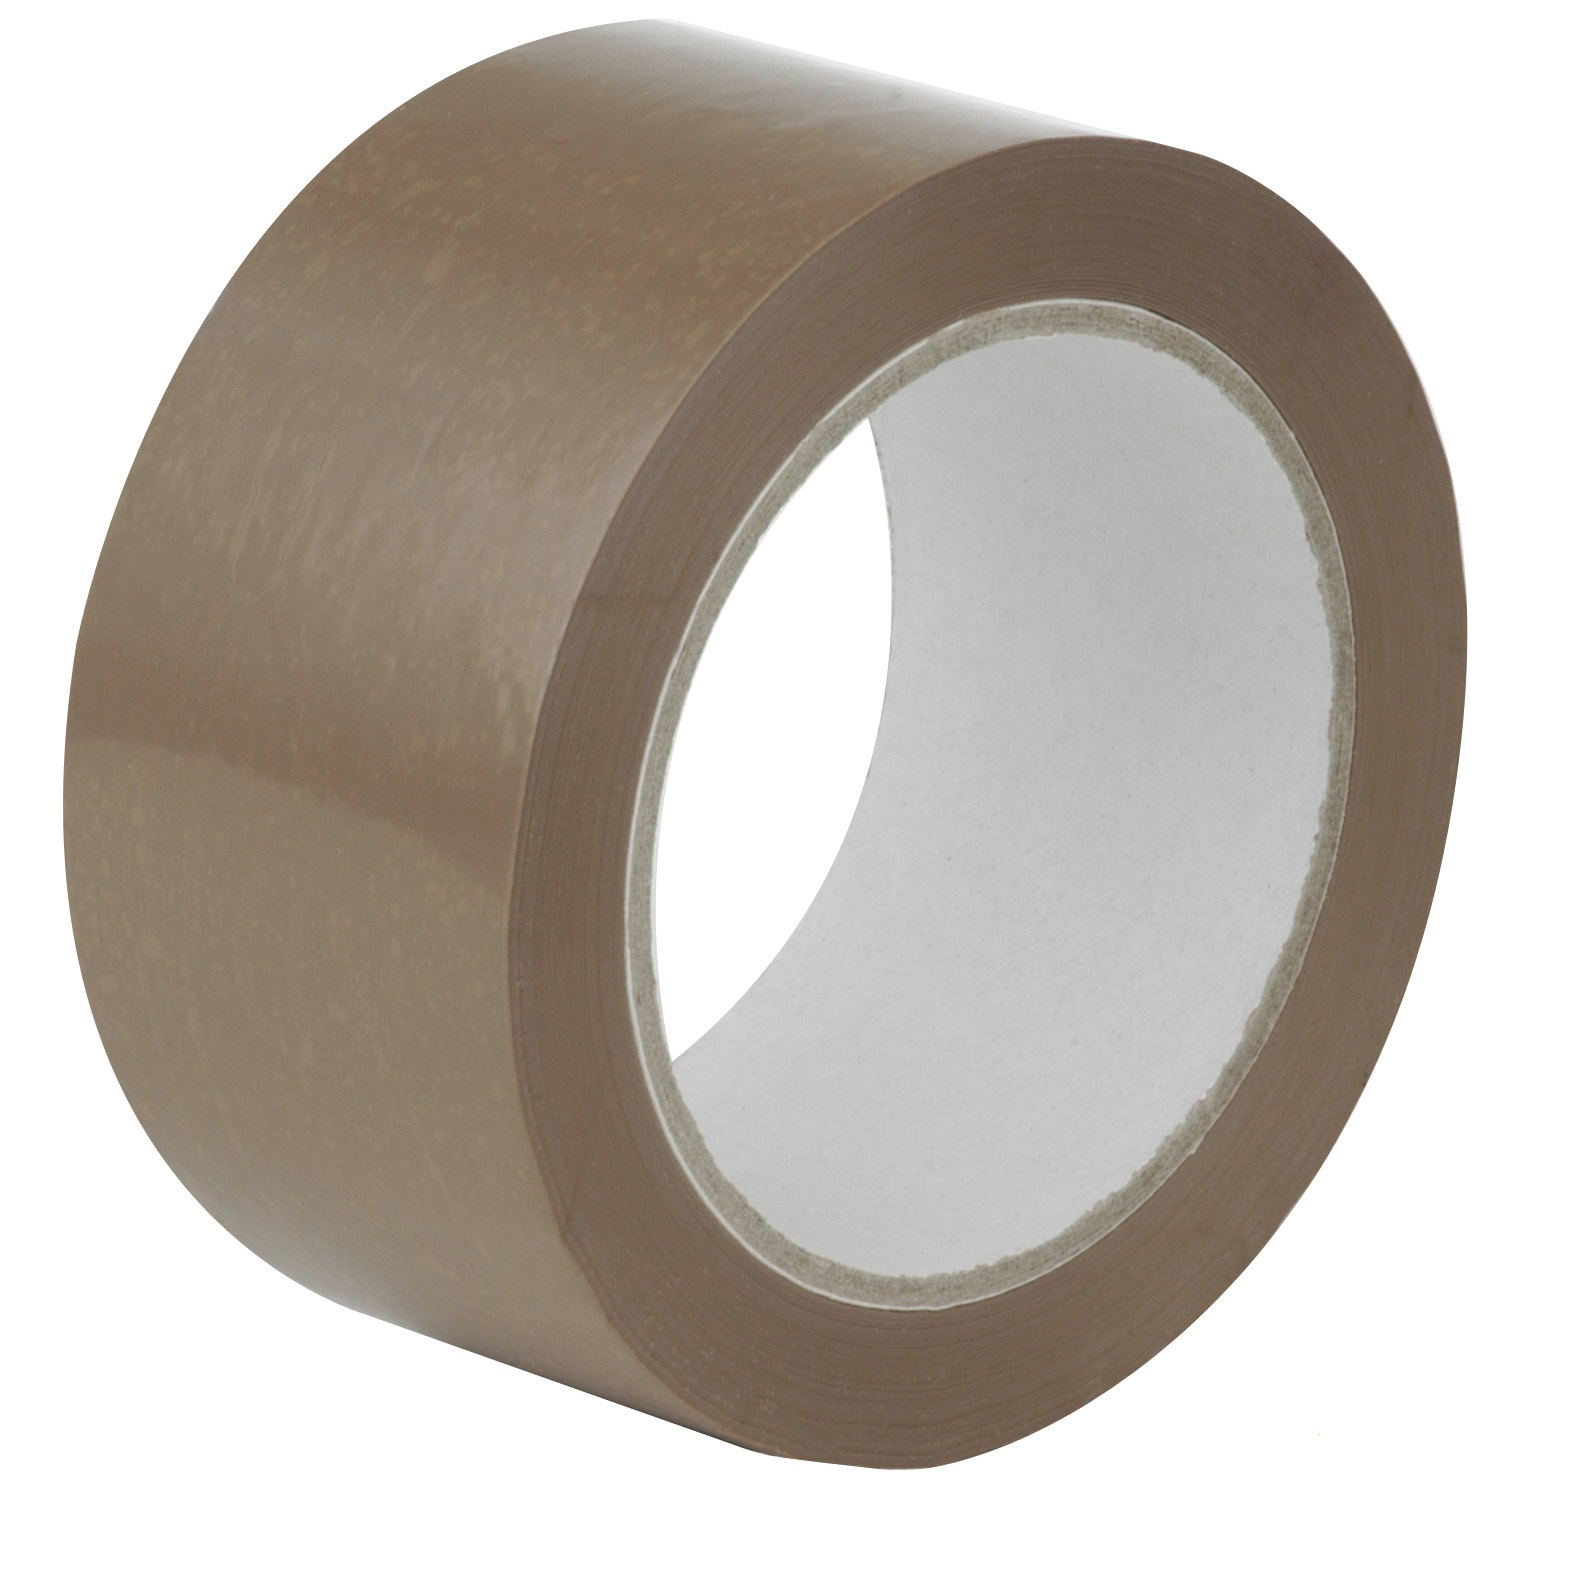 Value Buff Tape 48mmx66m PK6